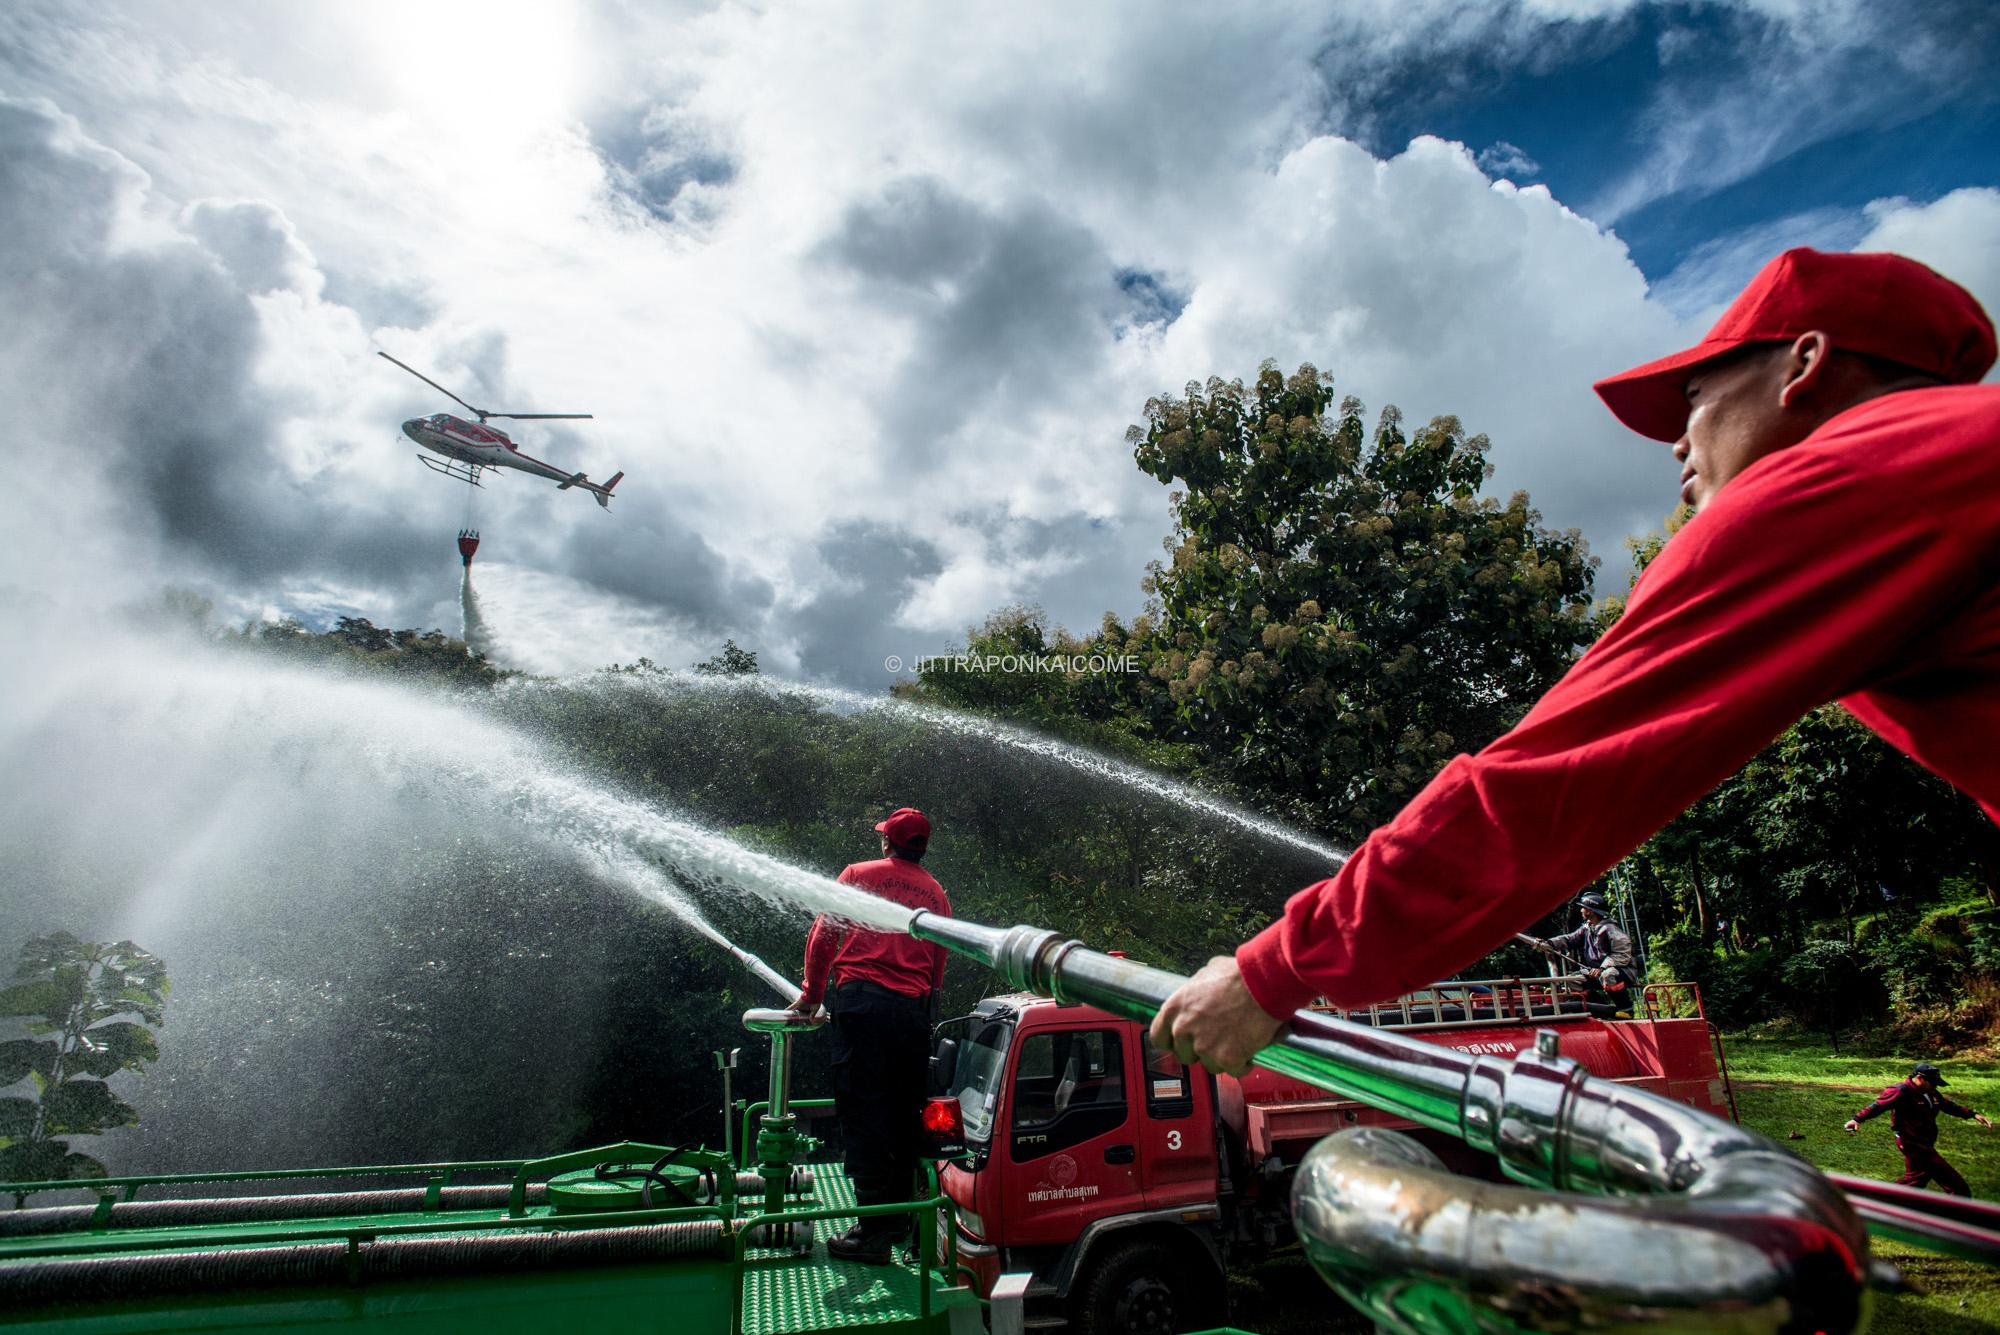 Firefighters demonstrate the capability of handling a wildfire. Chiang Mai, Thailand.